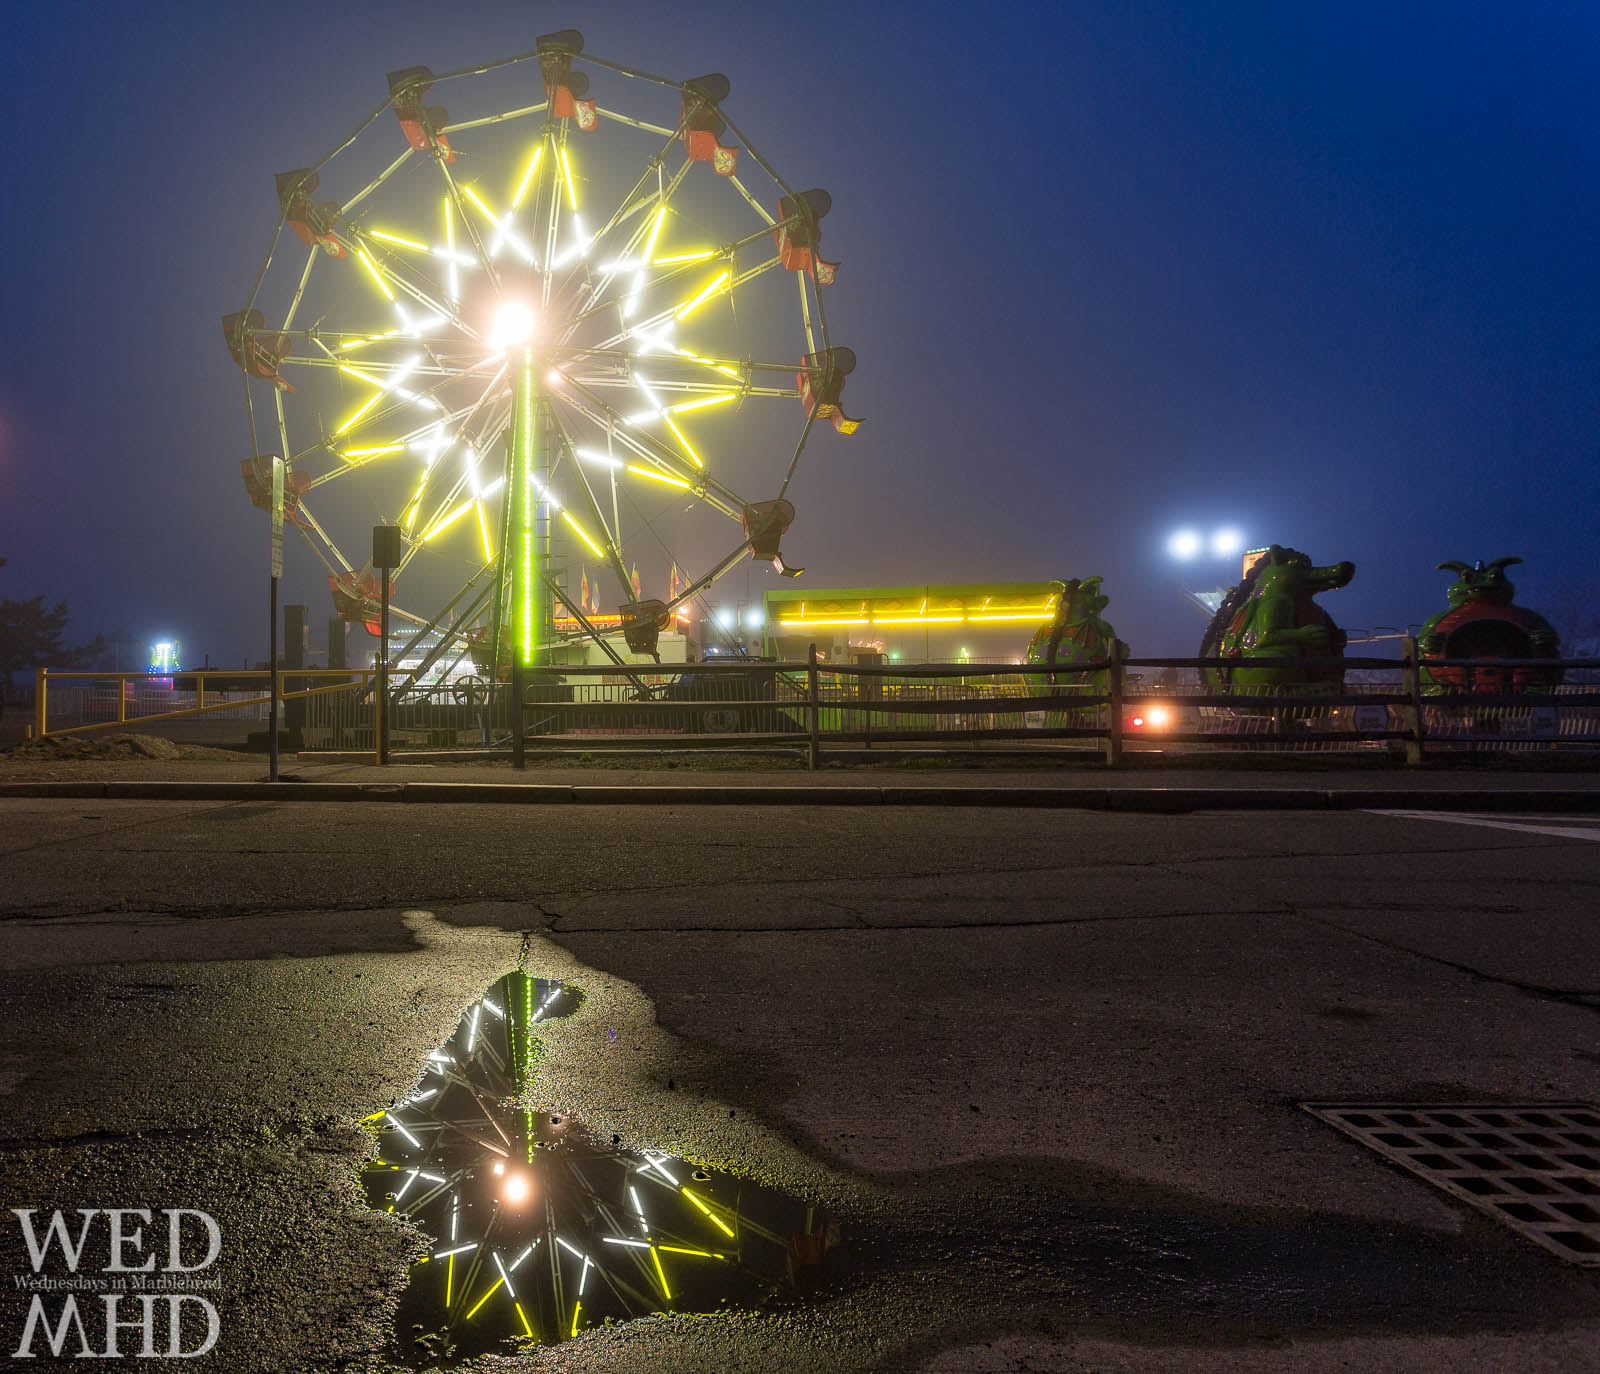 Ferris wheel reflected in a puddle of water on the first night of the carnival